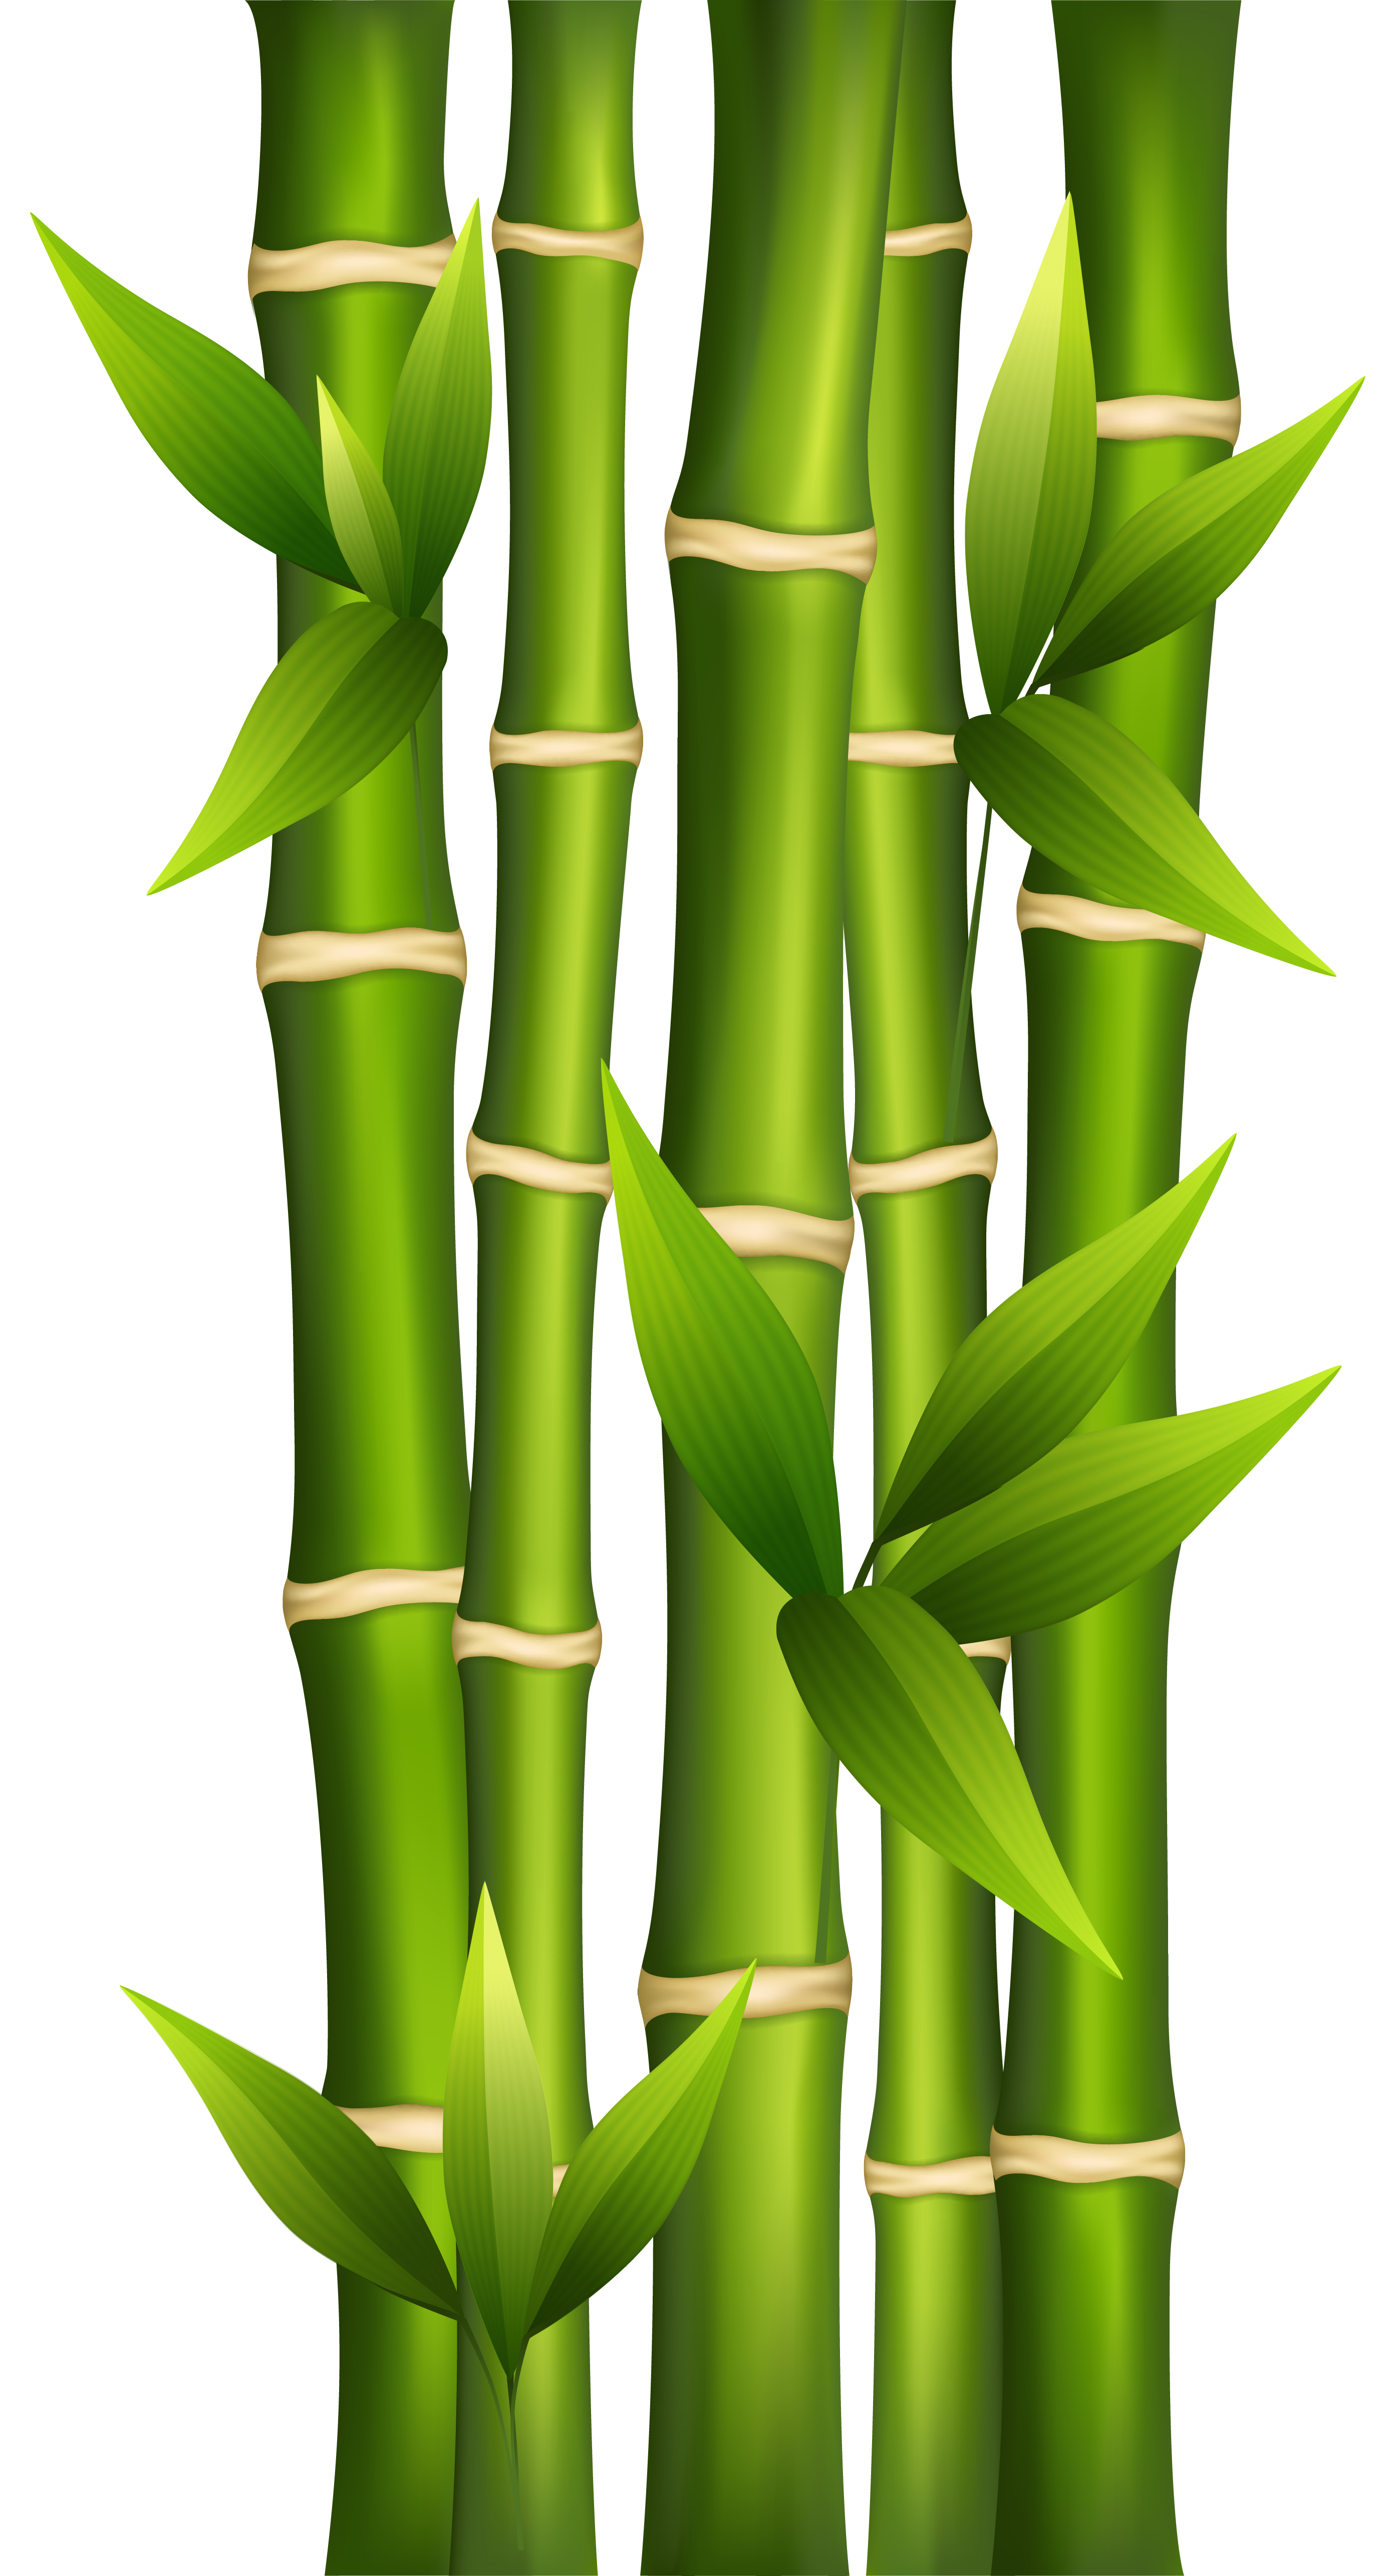 Bamboo clipart. Antivirus in drawing